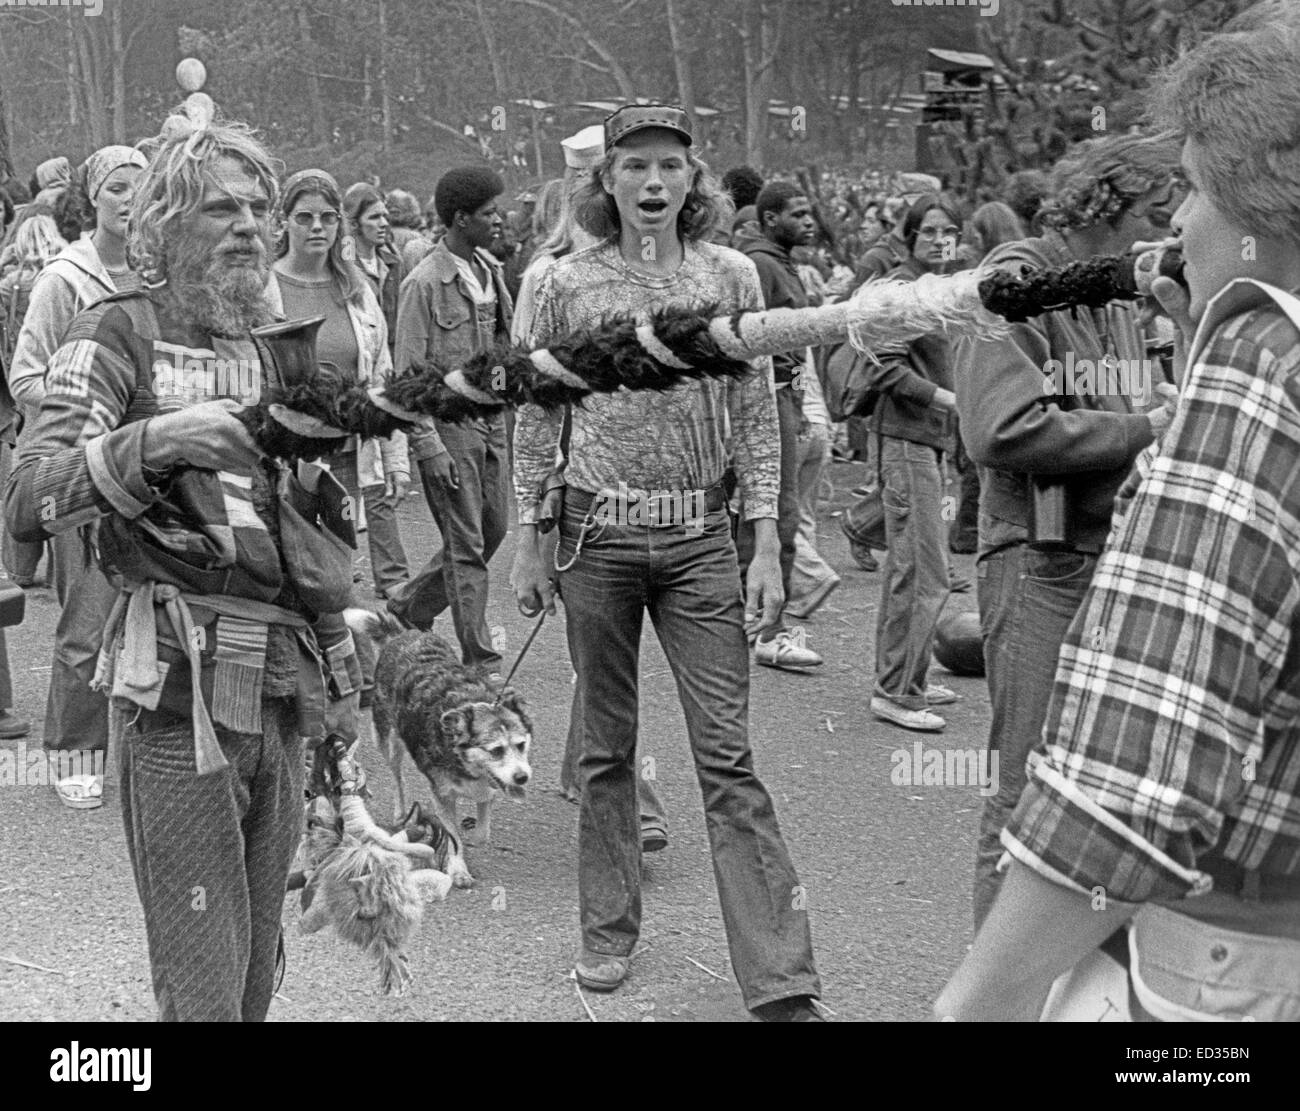 sharing a pipe at a free concert in Golden Gate Park, San Francisco, 1975 - Stock Image